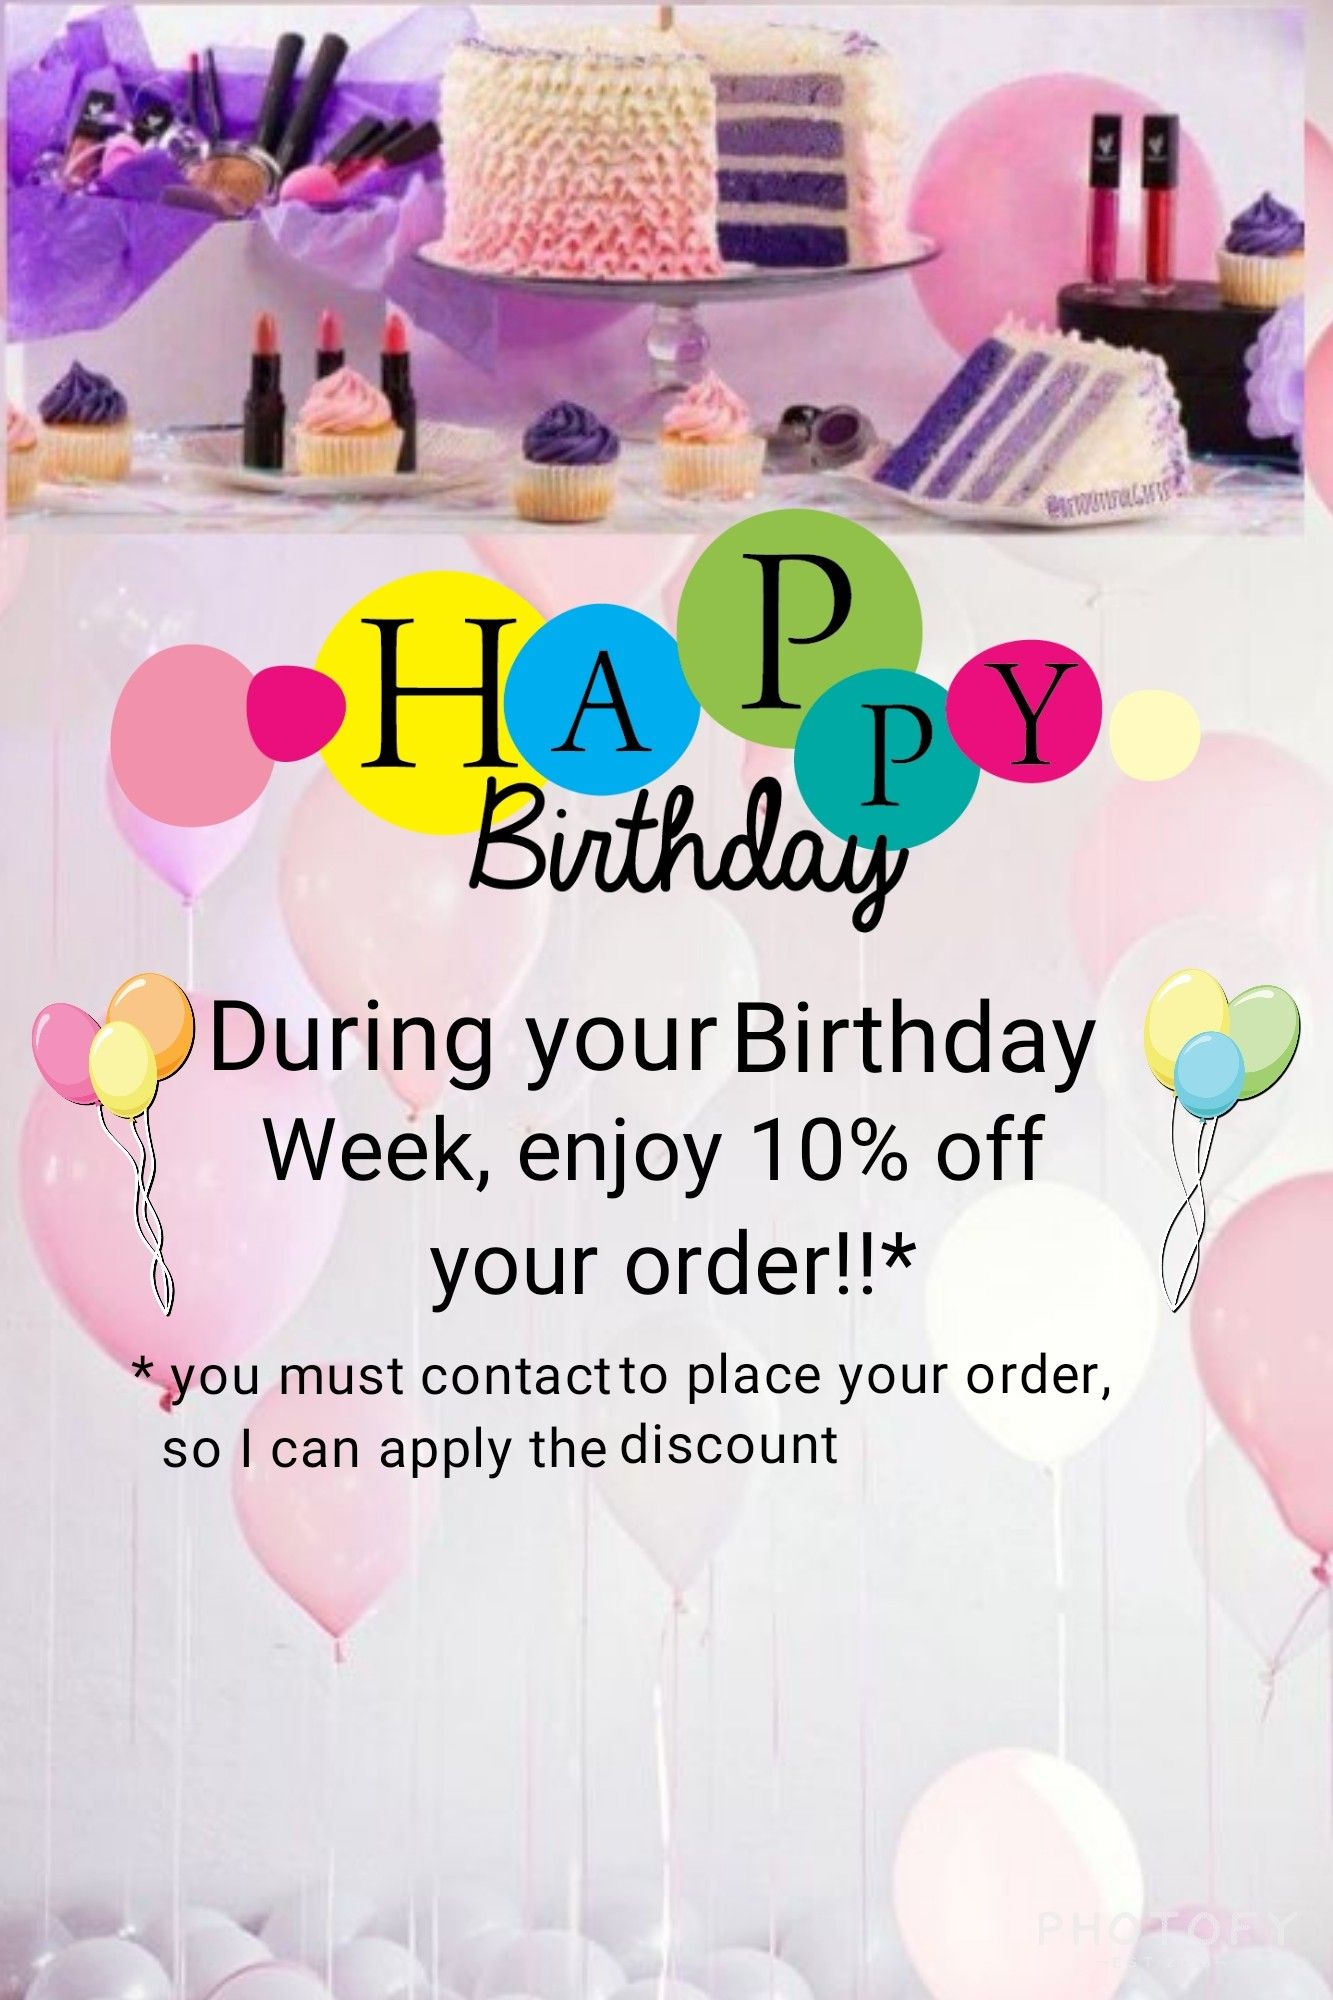 Birthday week special. Before placing your order, contact